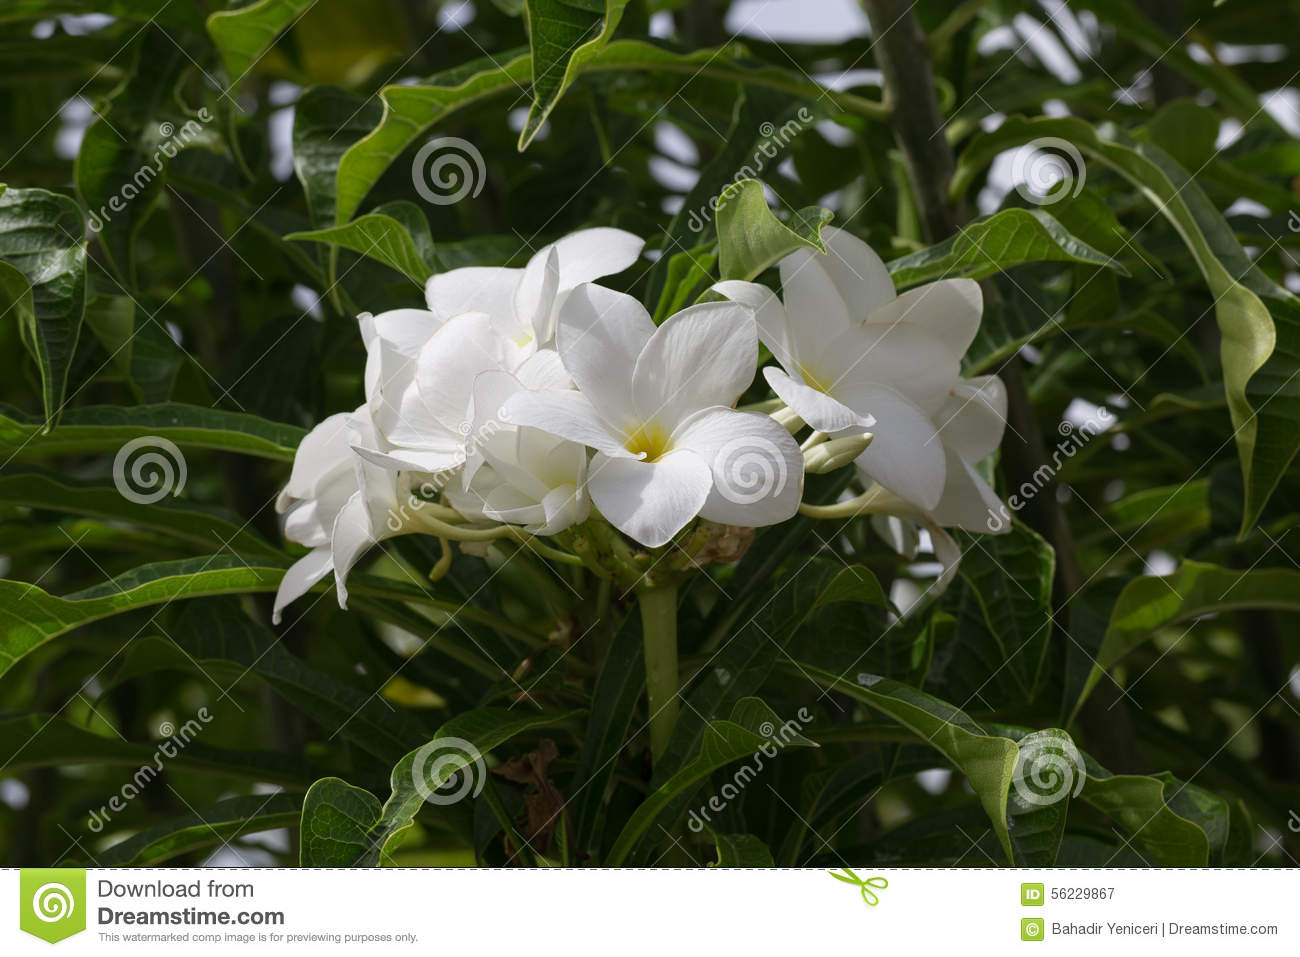 White flowers stock image image of glossy flowery beauty 56229867 download white flowers stock image image of glossy flowery beauty 56229867 mightylinksfo